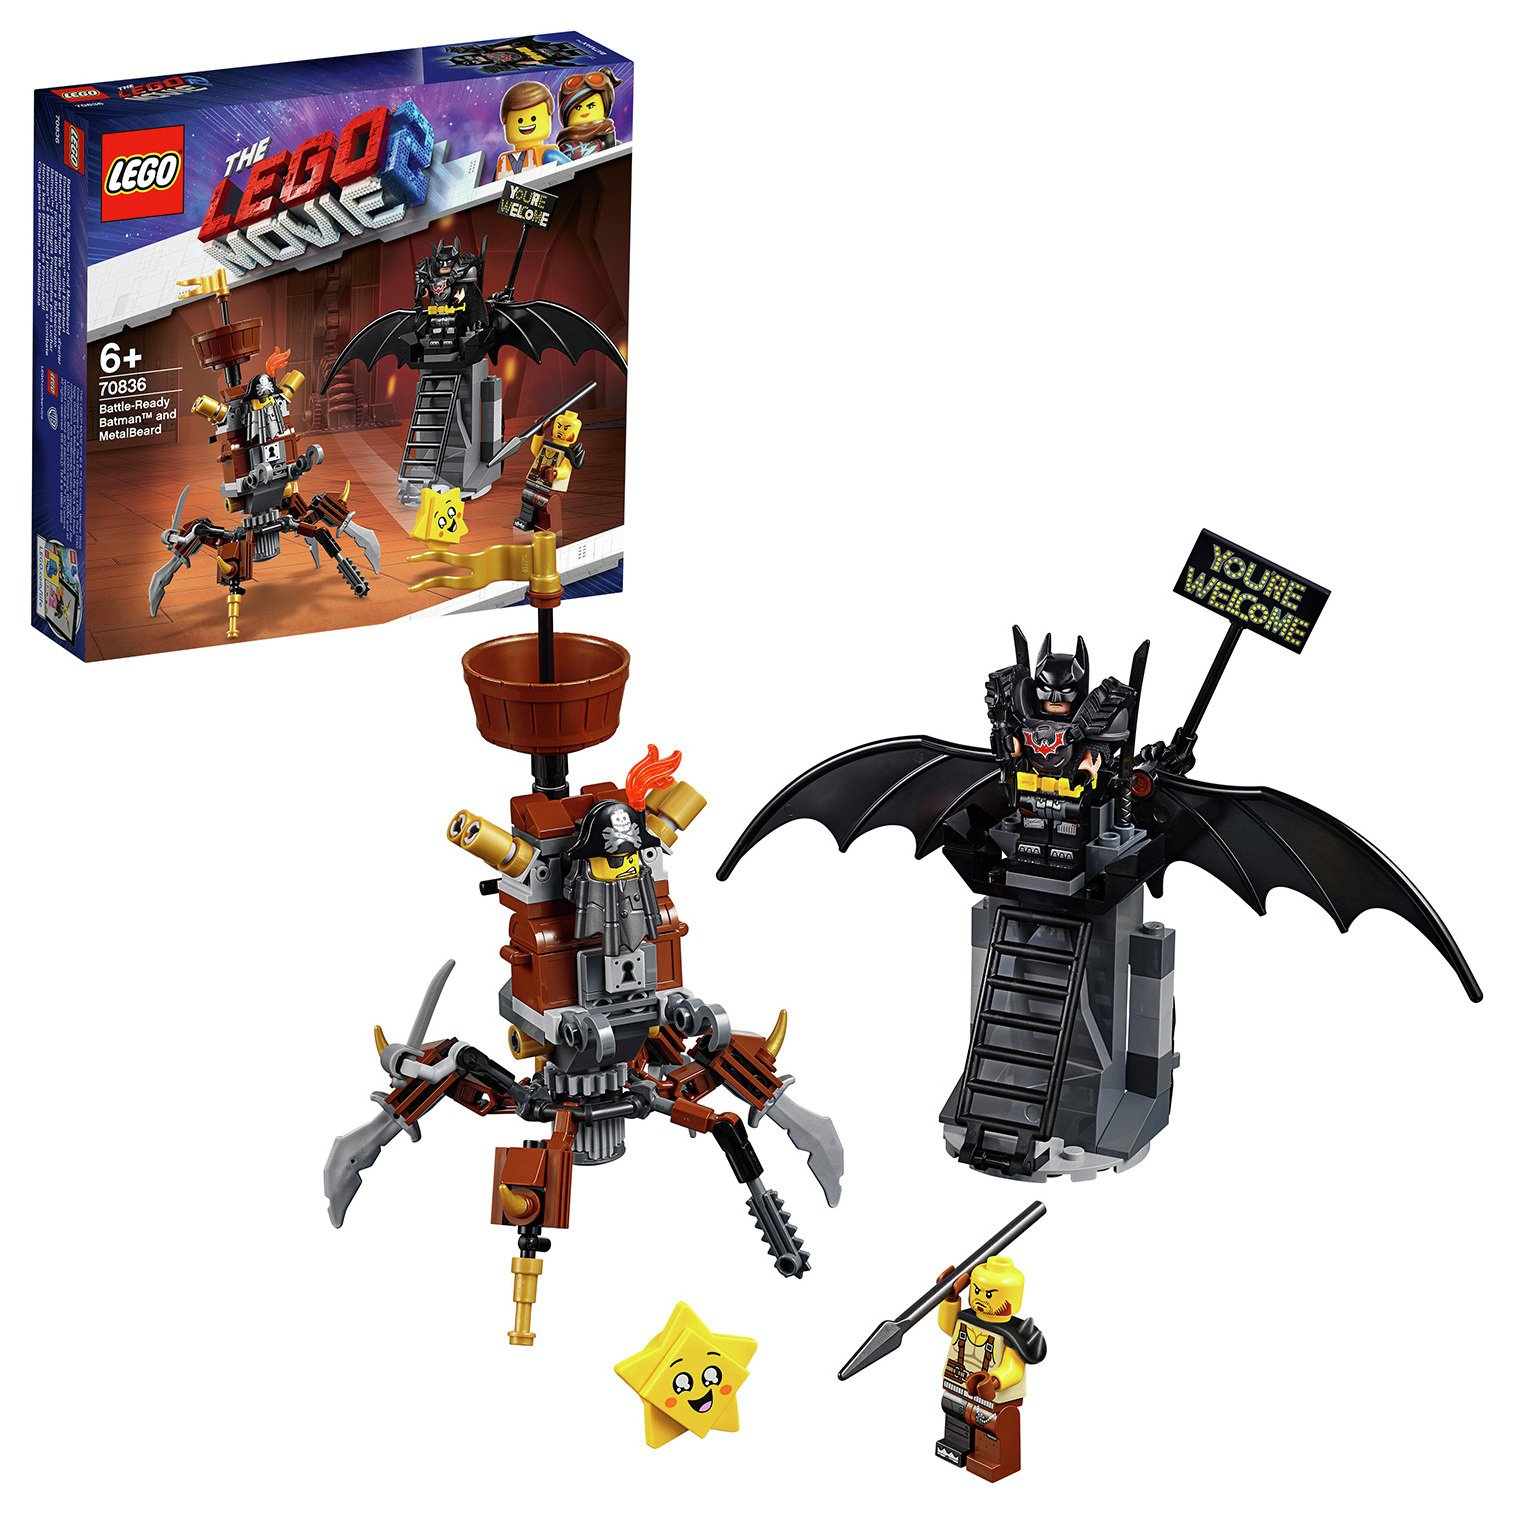 LEGO Movie 2 Battle-Ready Batman & MetalBeard Playset- 70836